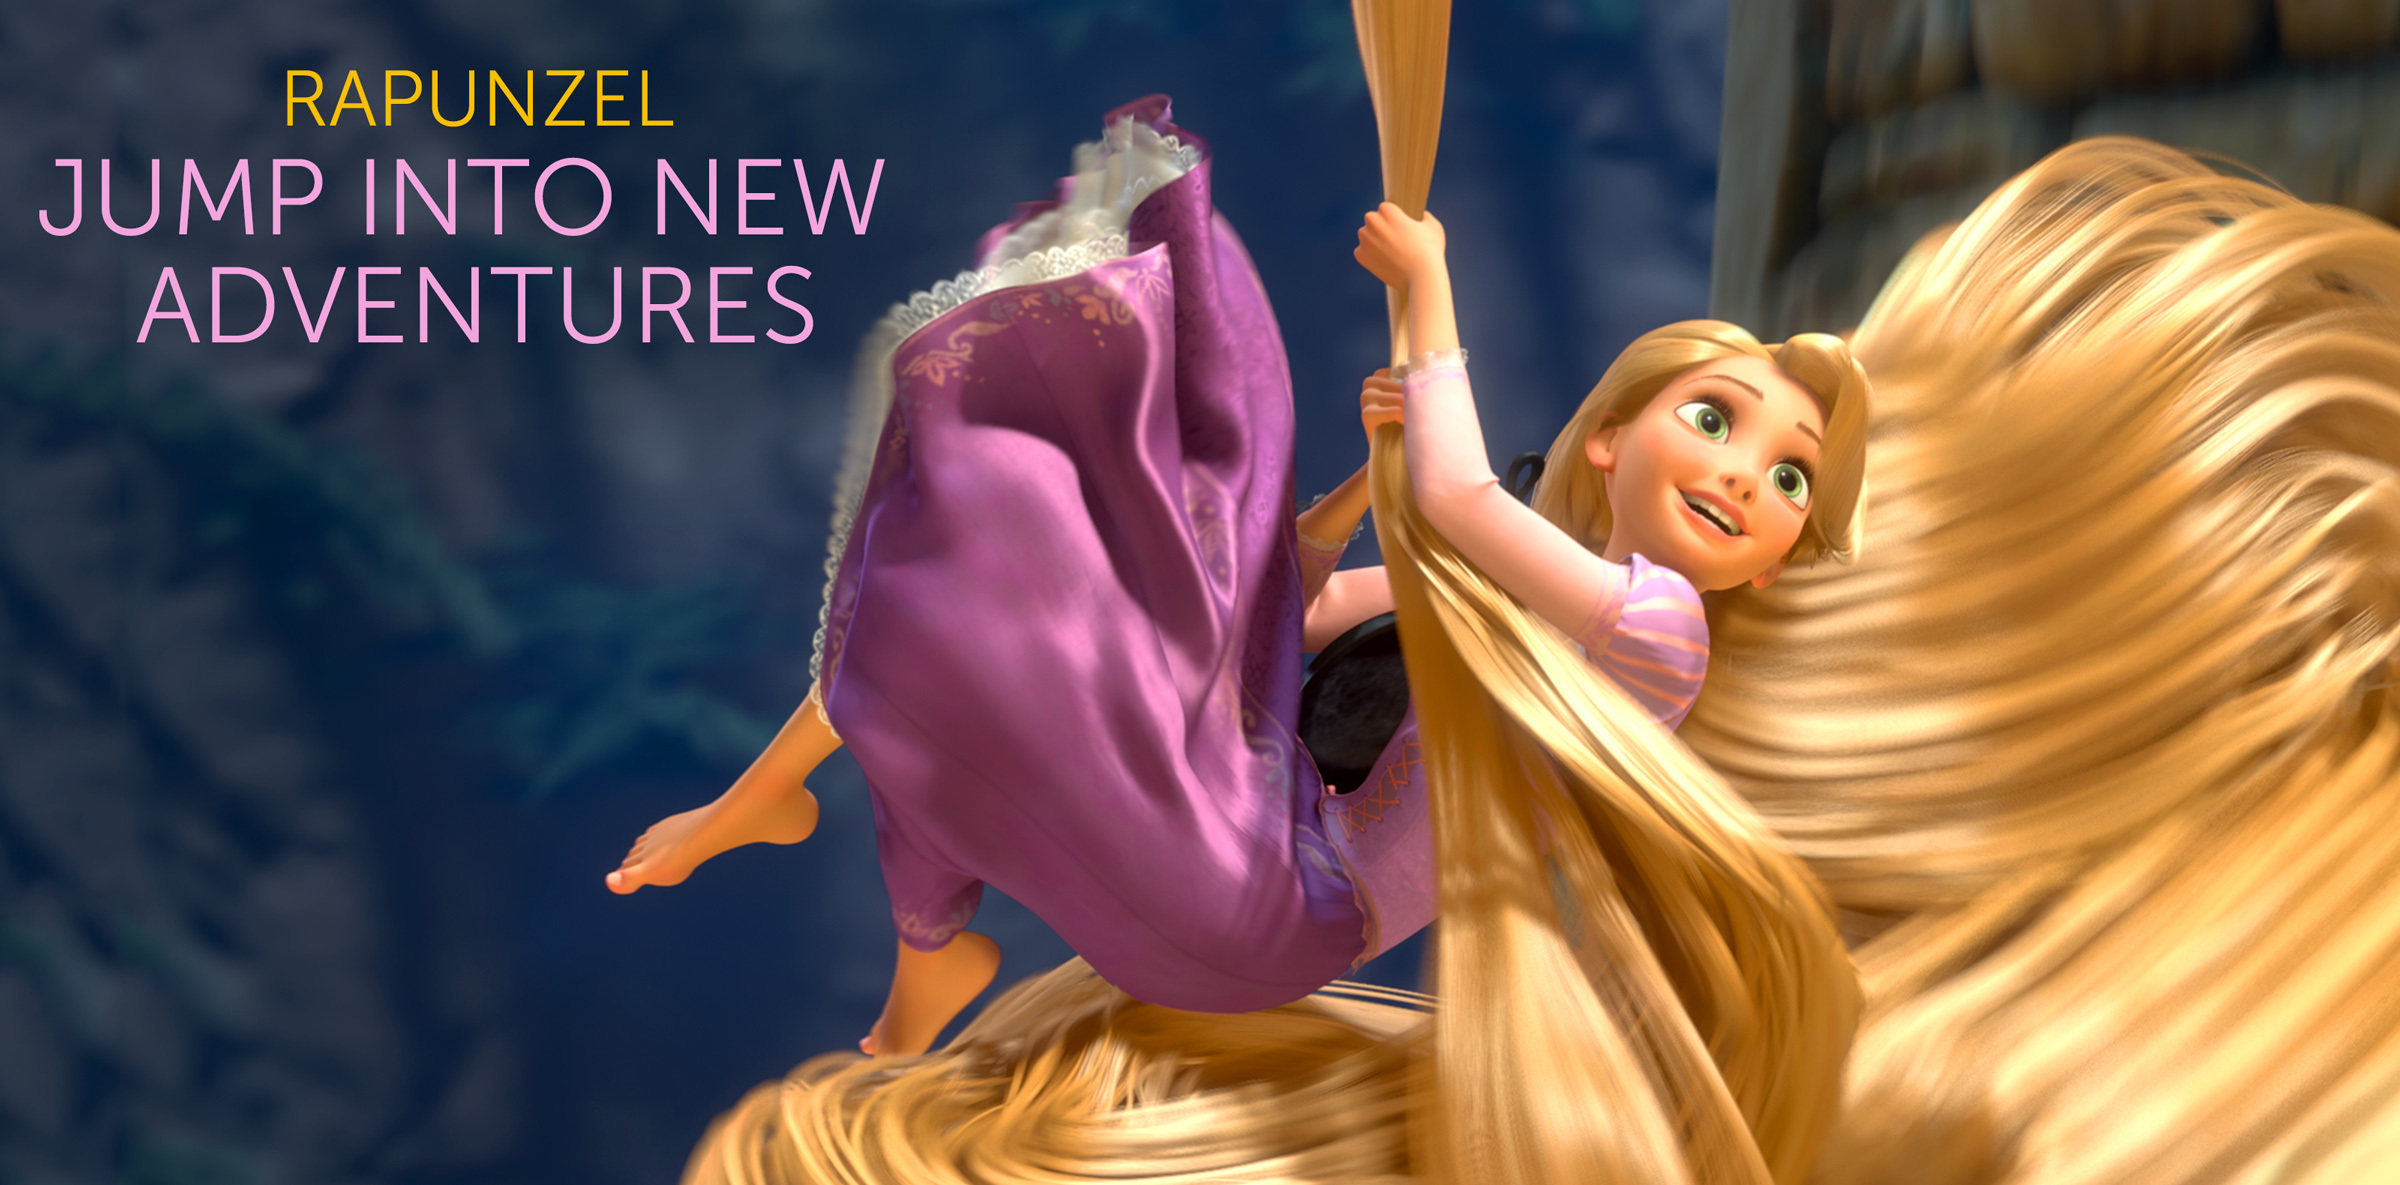 Rapunzel MOVIE ART 1